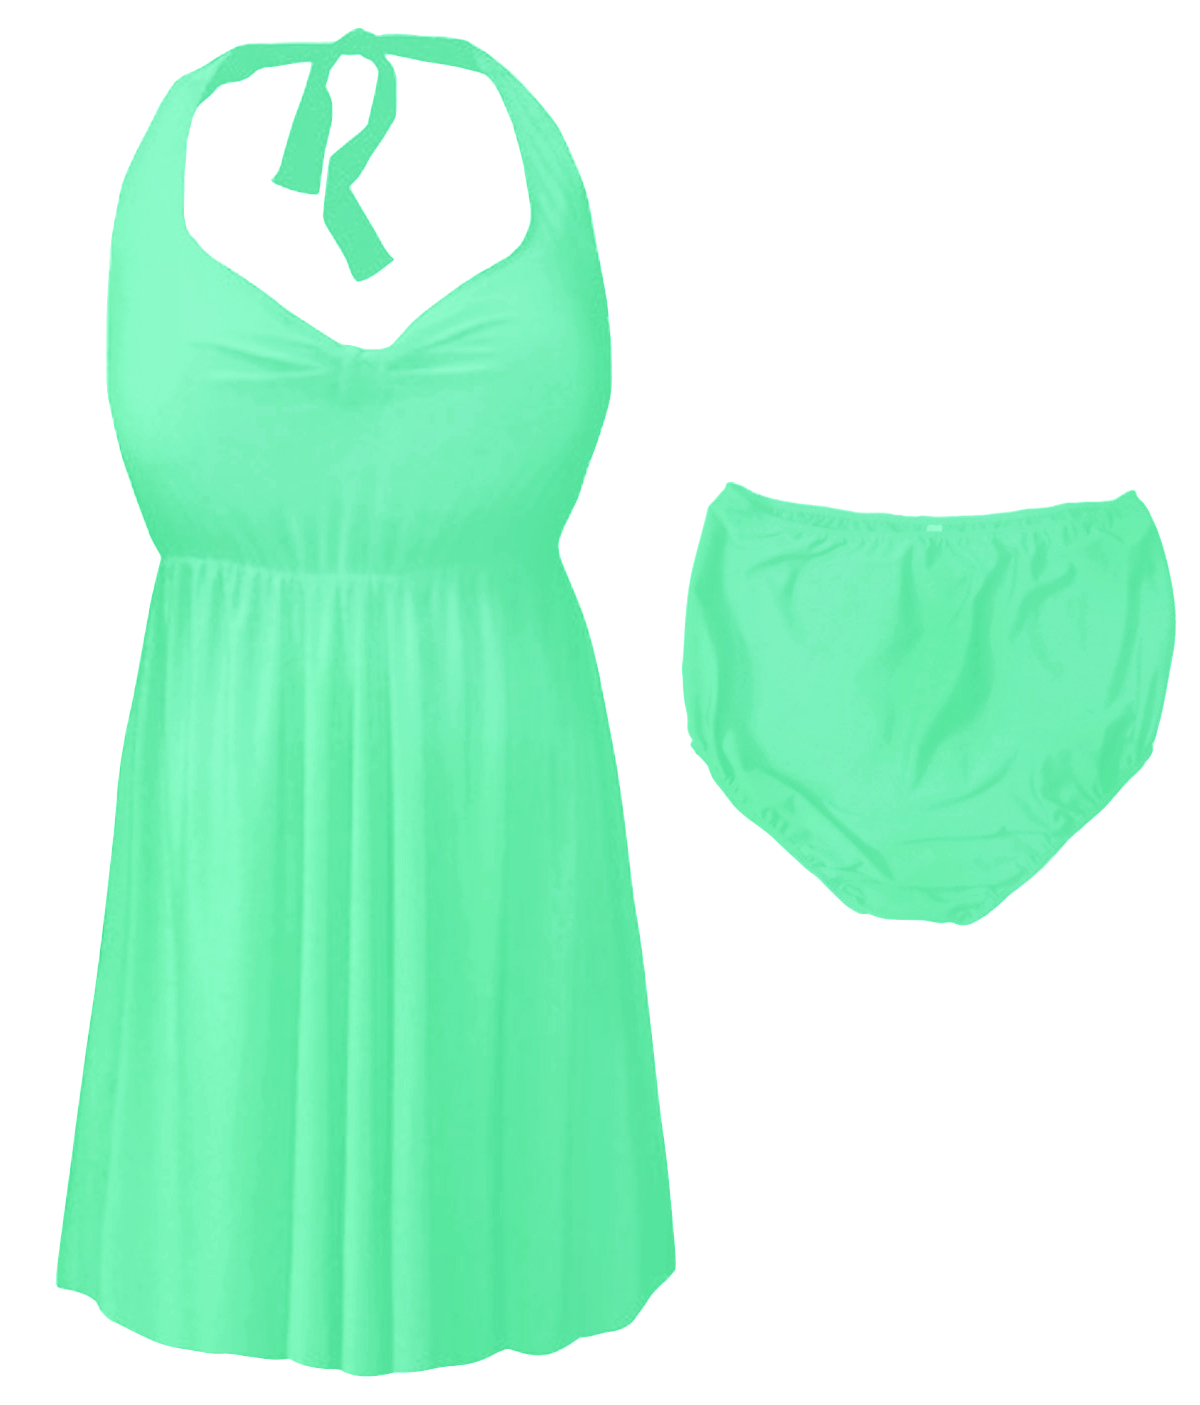 83dac4076661c Mint Green Plus Size   Supersize Halter 2pc Swimdress 0x 1x 2x 3x 4x 5x 6x  7x 8x